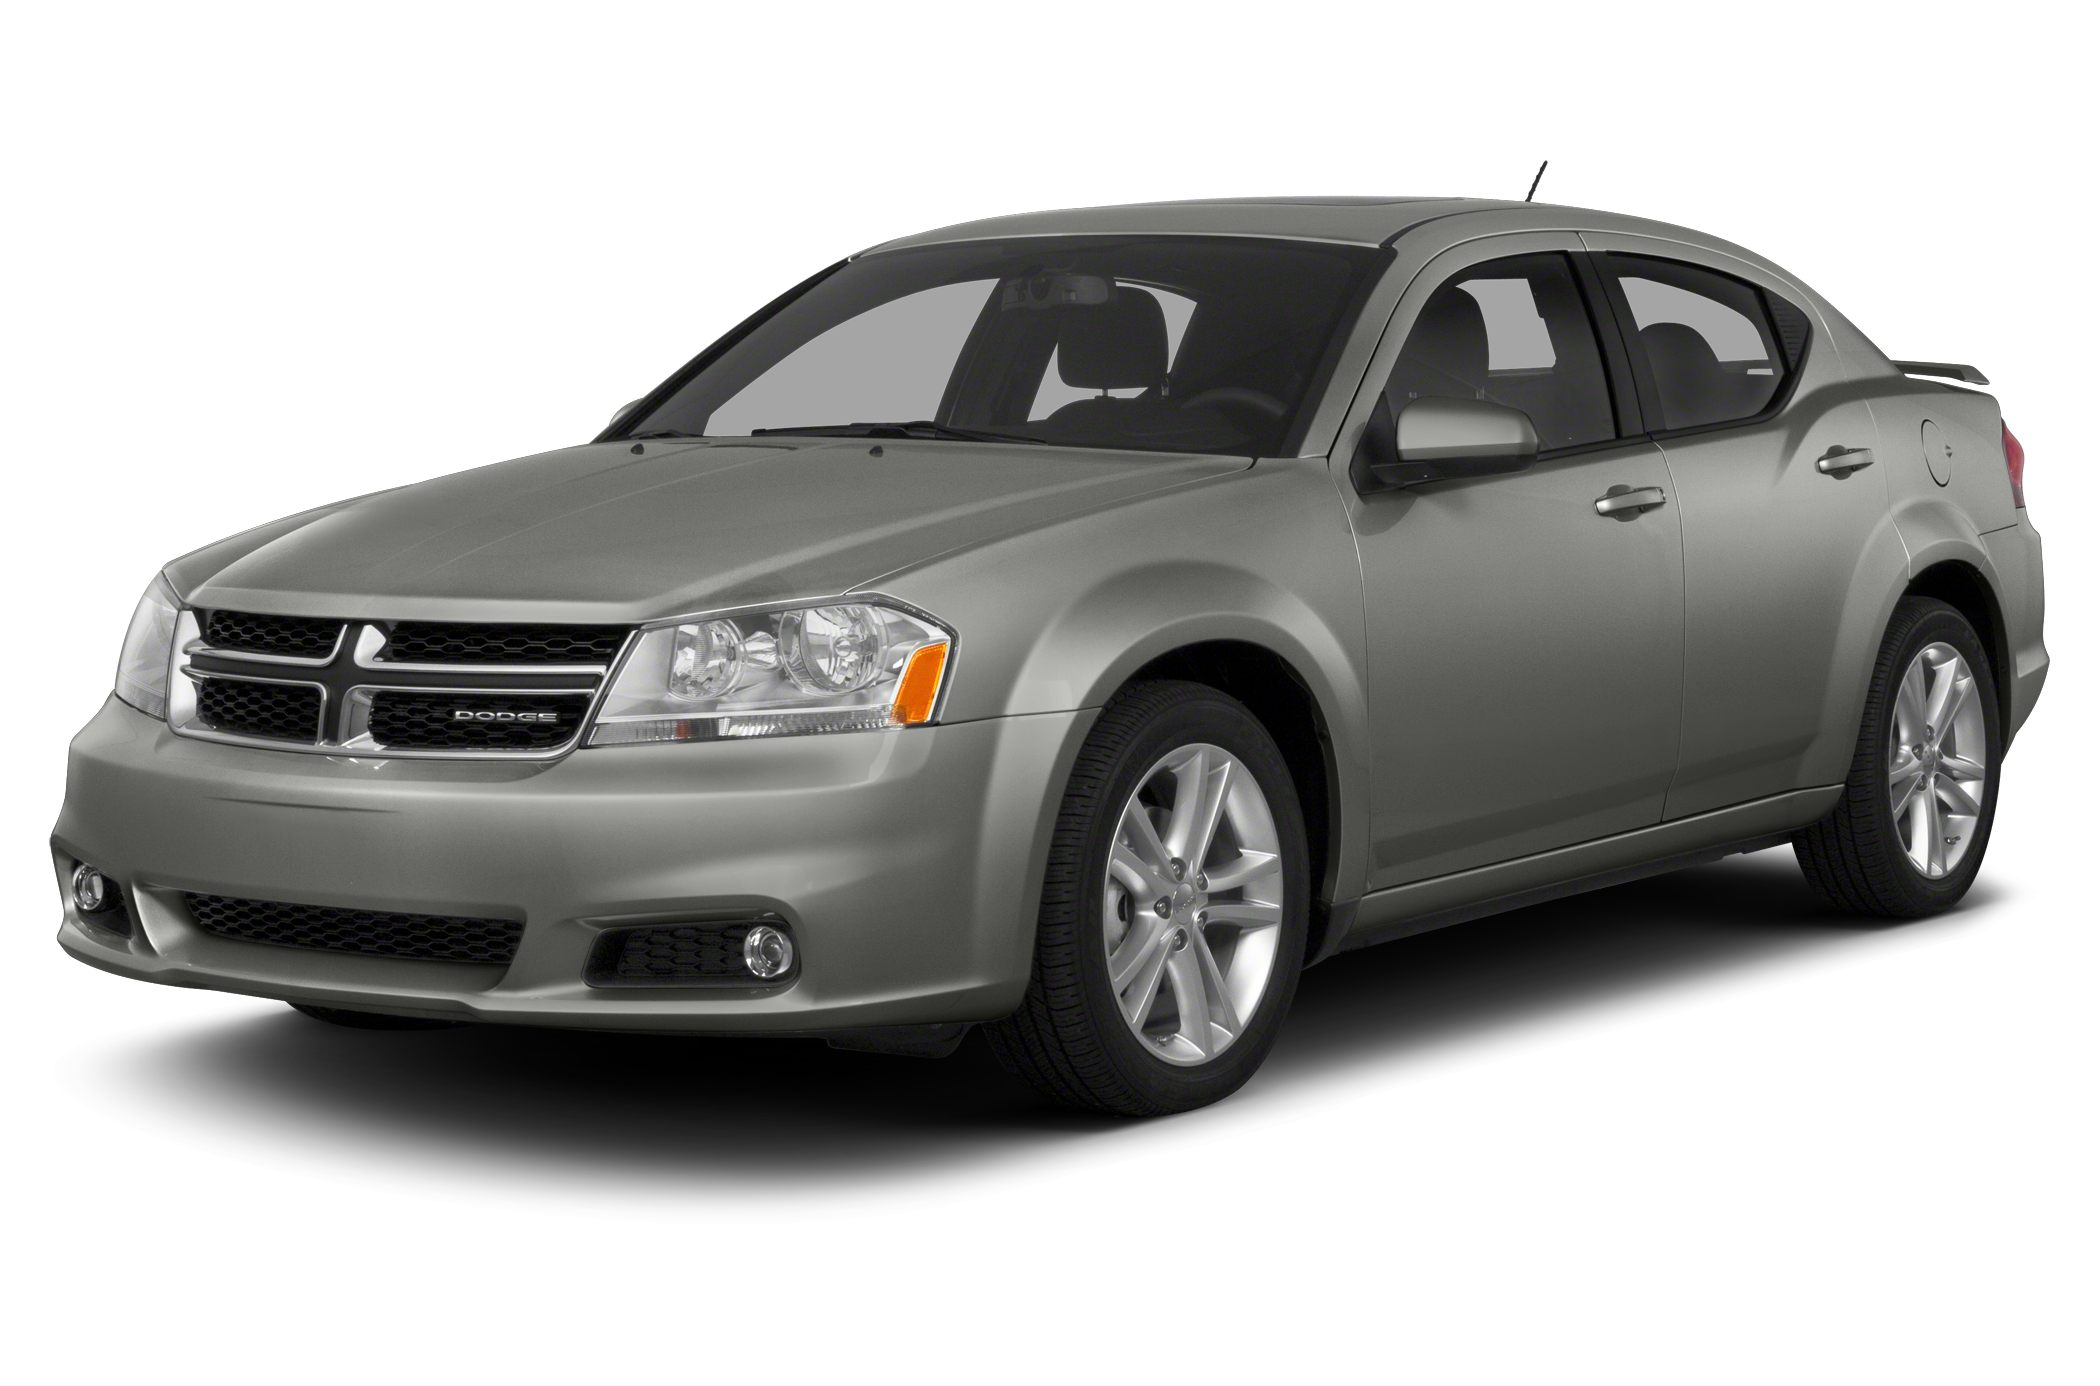 Dodge Avenger: Remote start system — if equipped